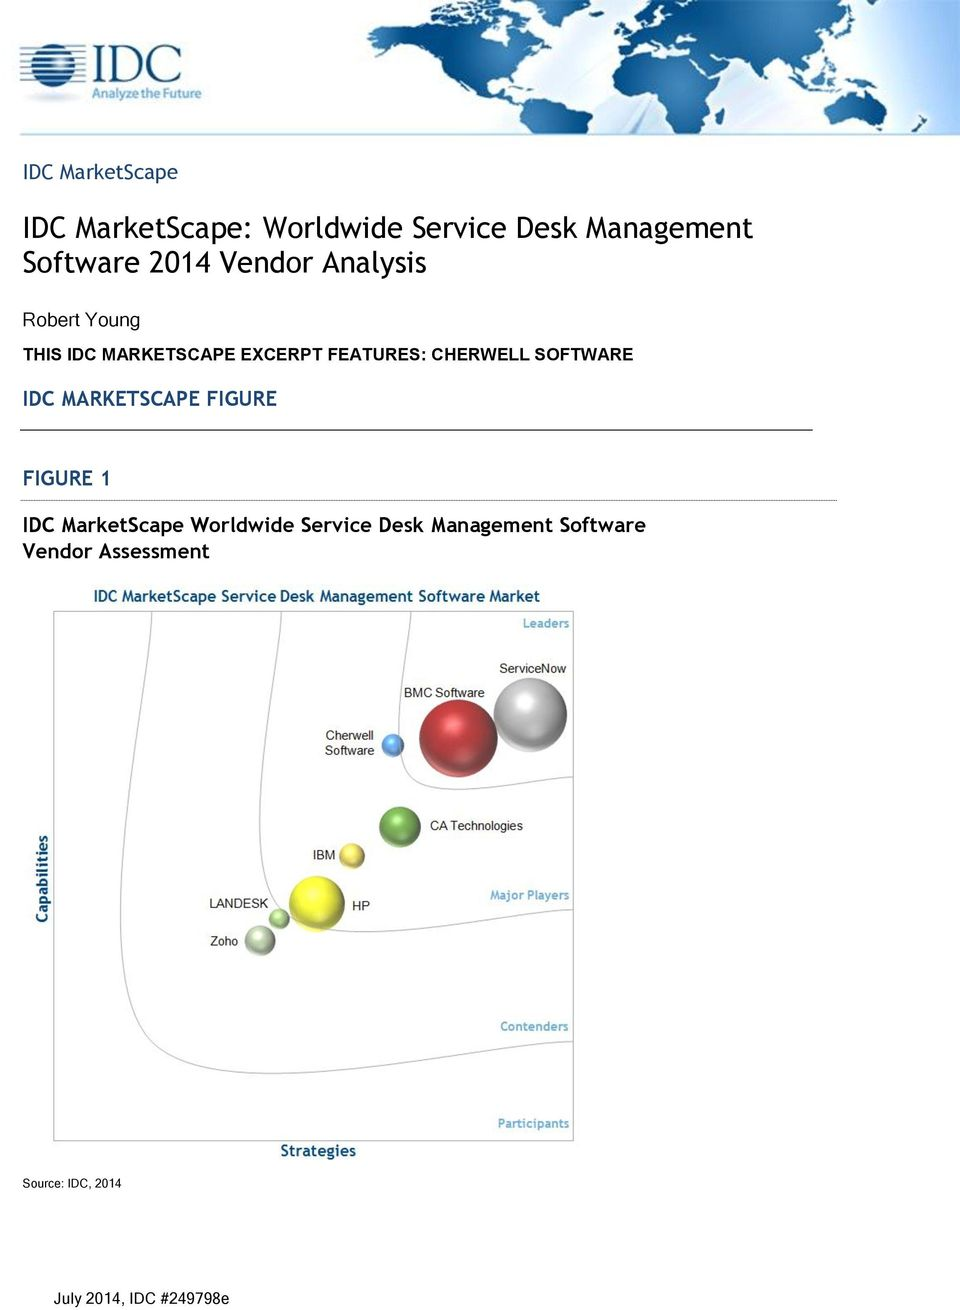 FEATURES: CHERWELL SOFTWARE IDC MARKETSCAPE FIGURE FIGURE 1 IDC